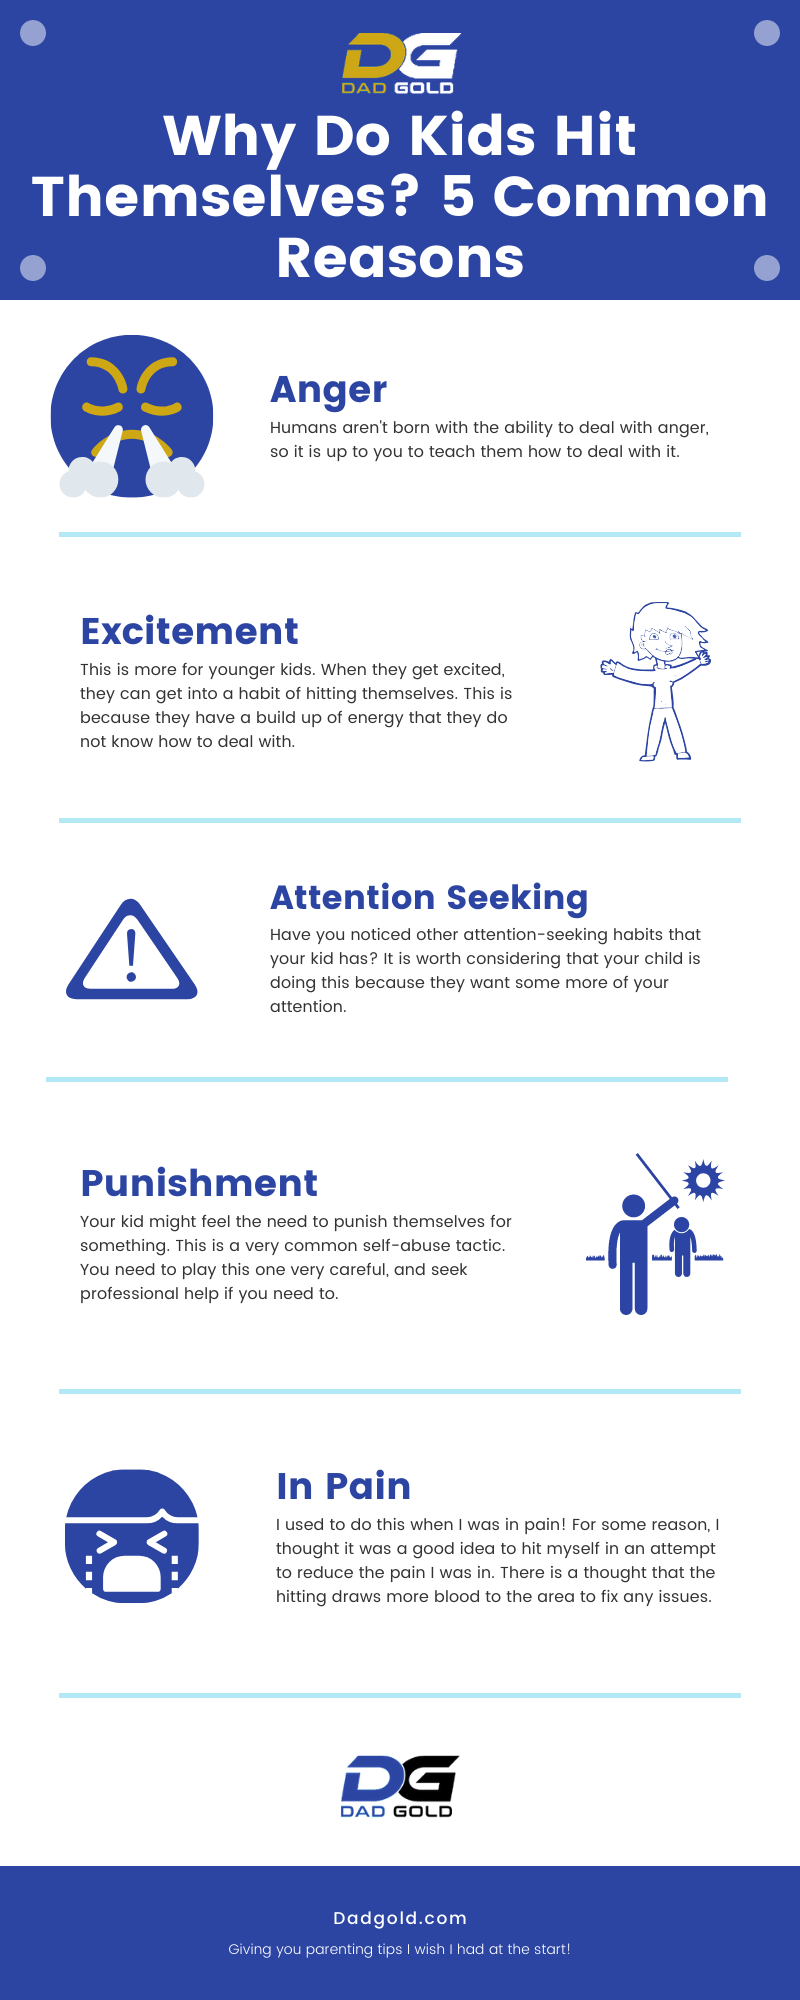 Why Do Kids Hit Themselves? 5 Common Reasons Infographic